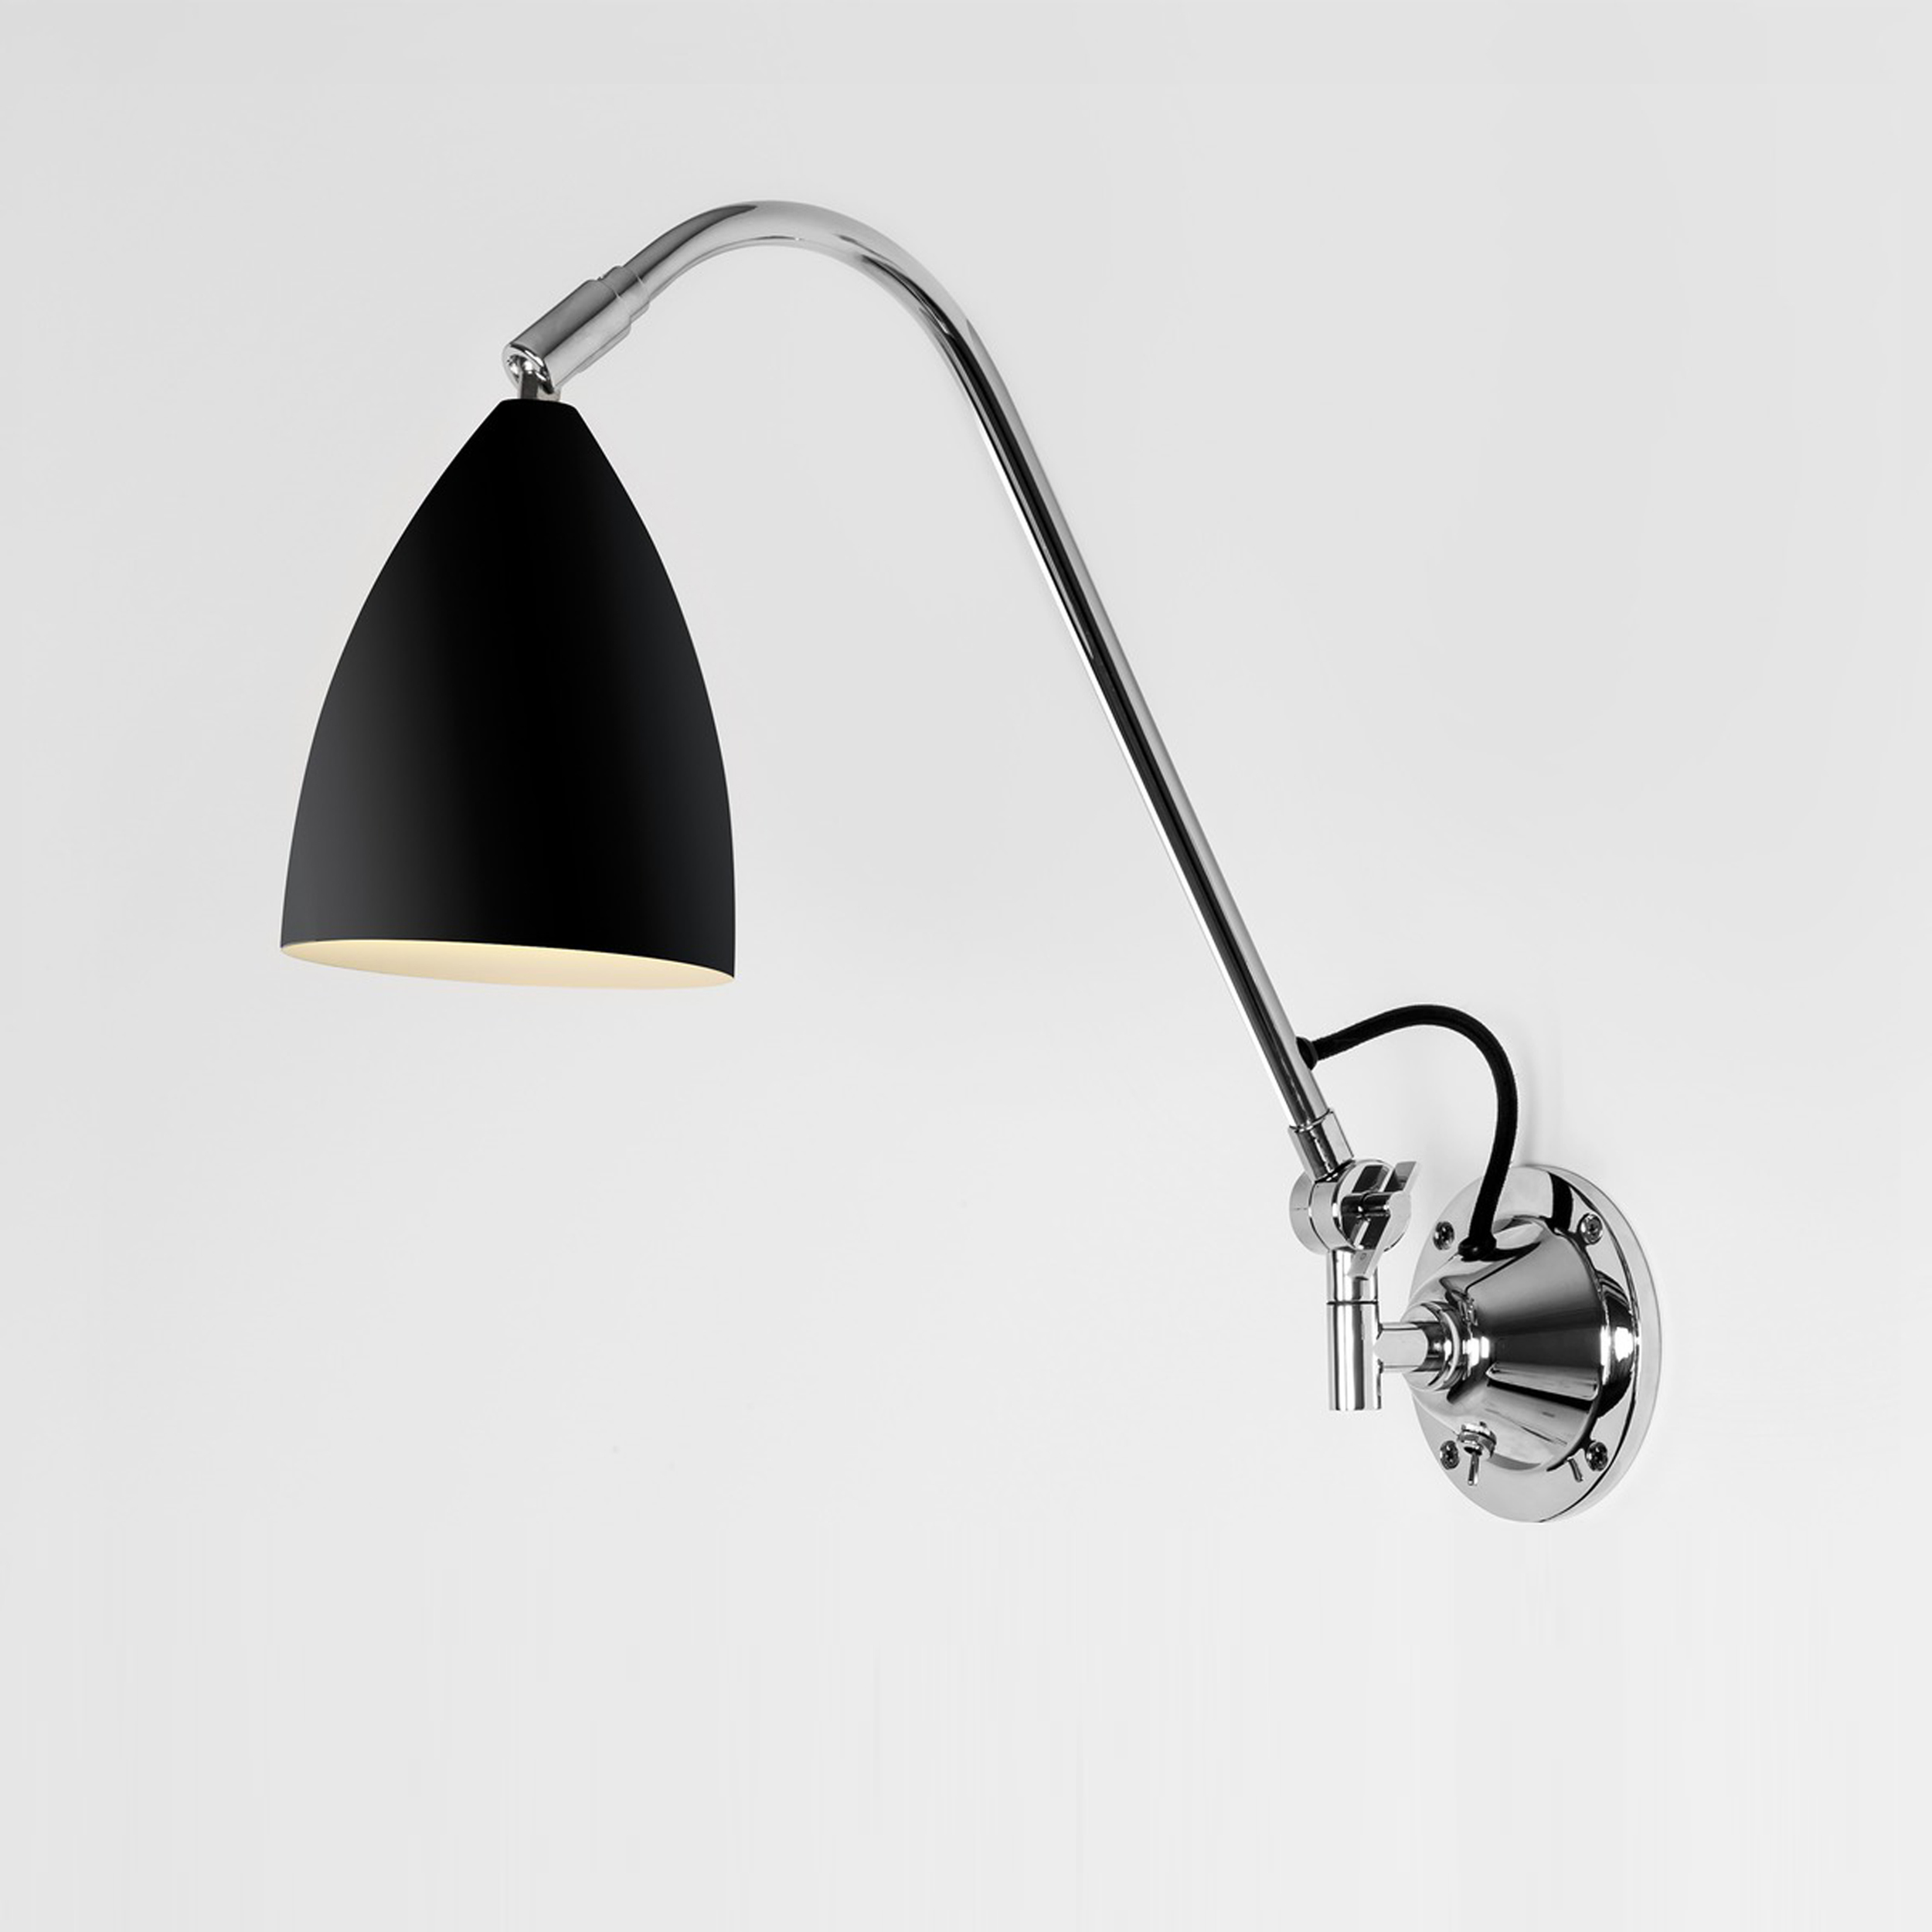 Astro Joel Grande Wall Light Black C